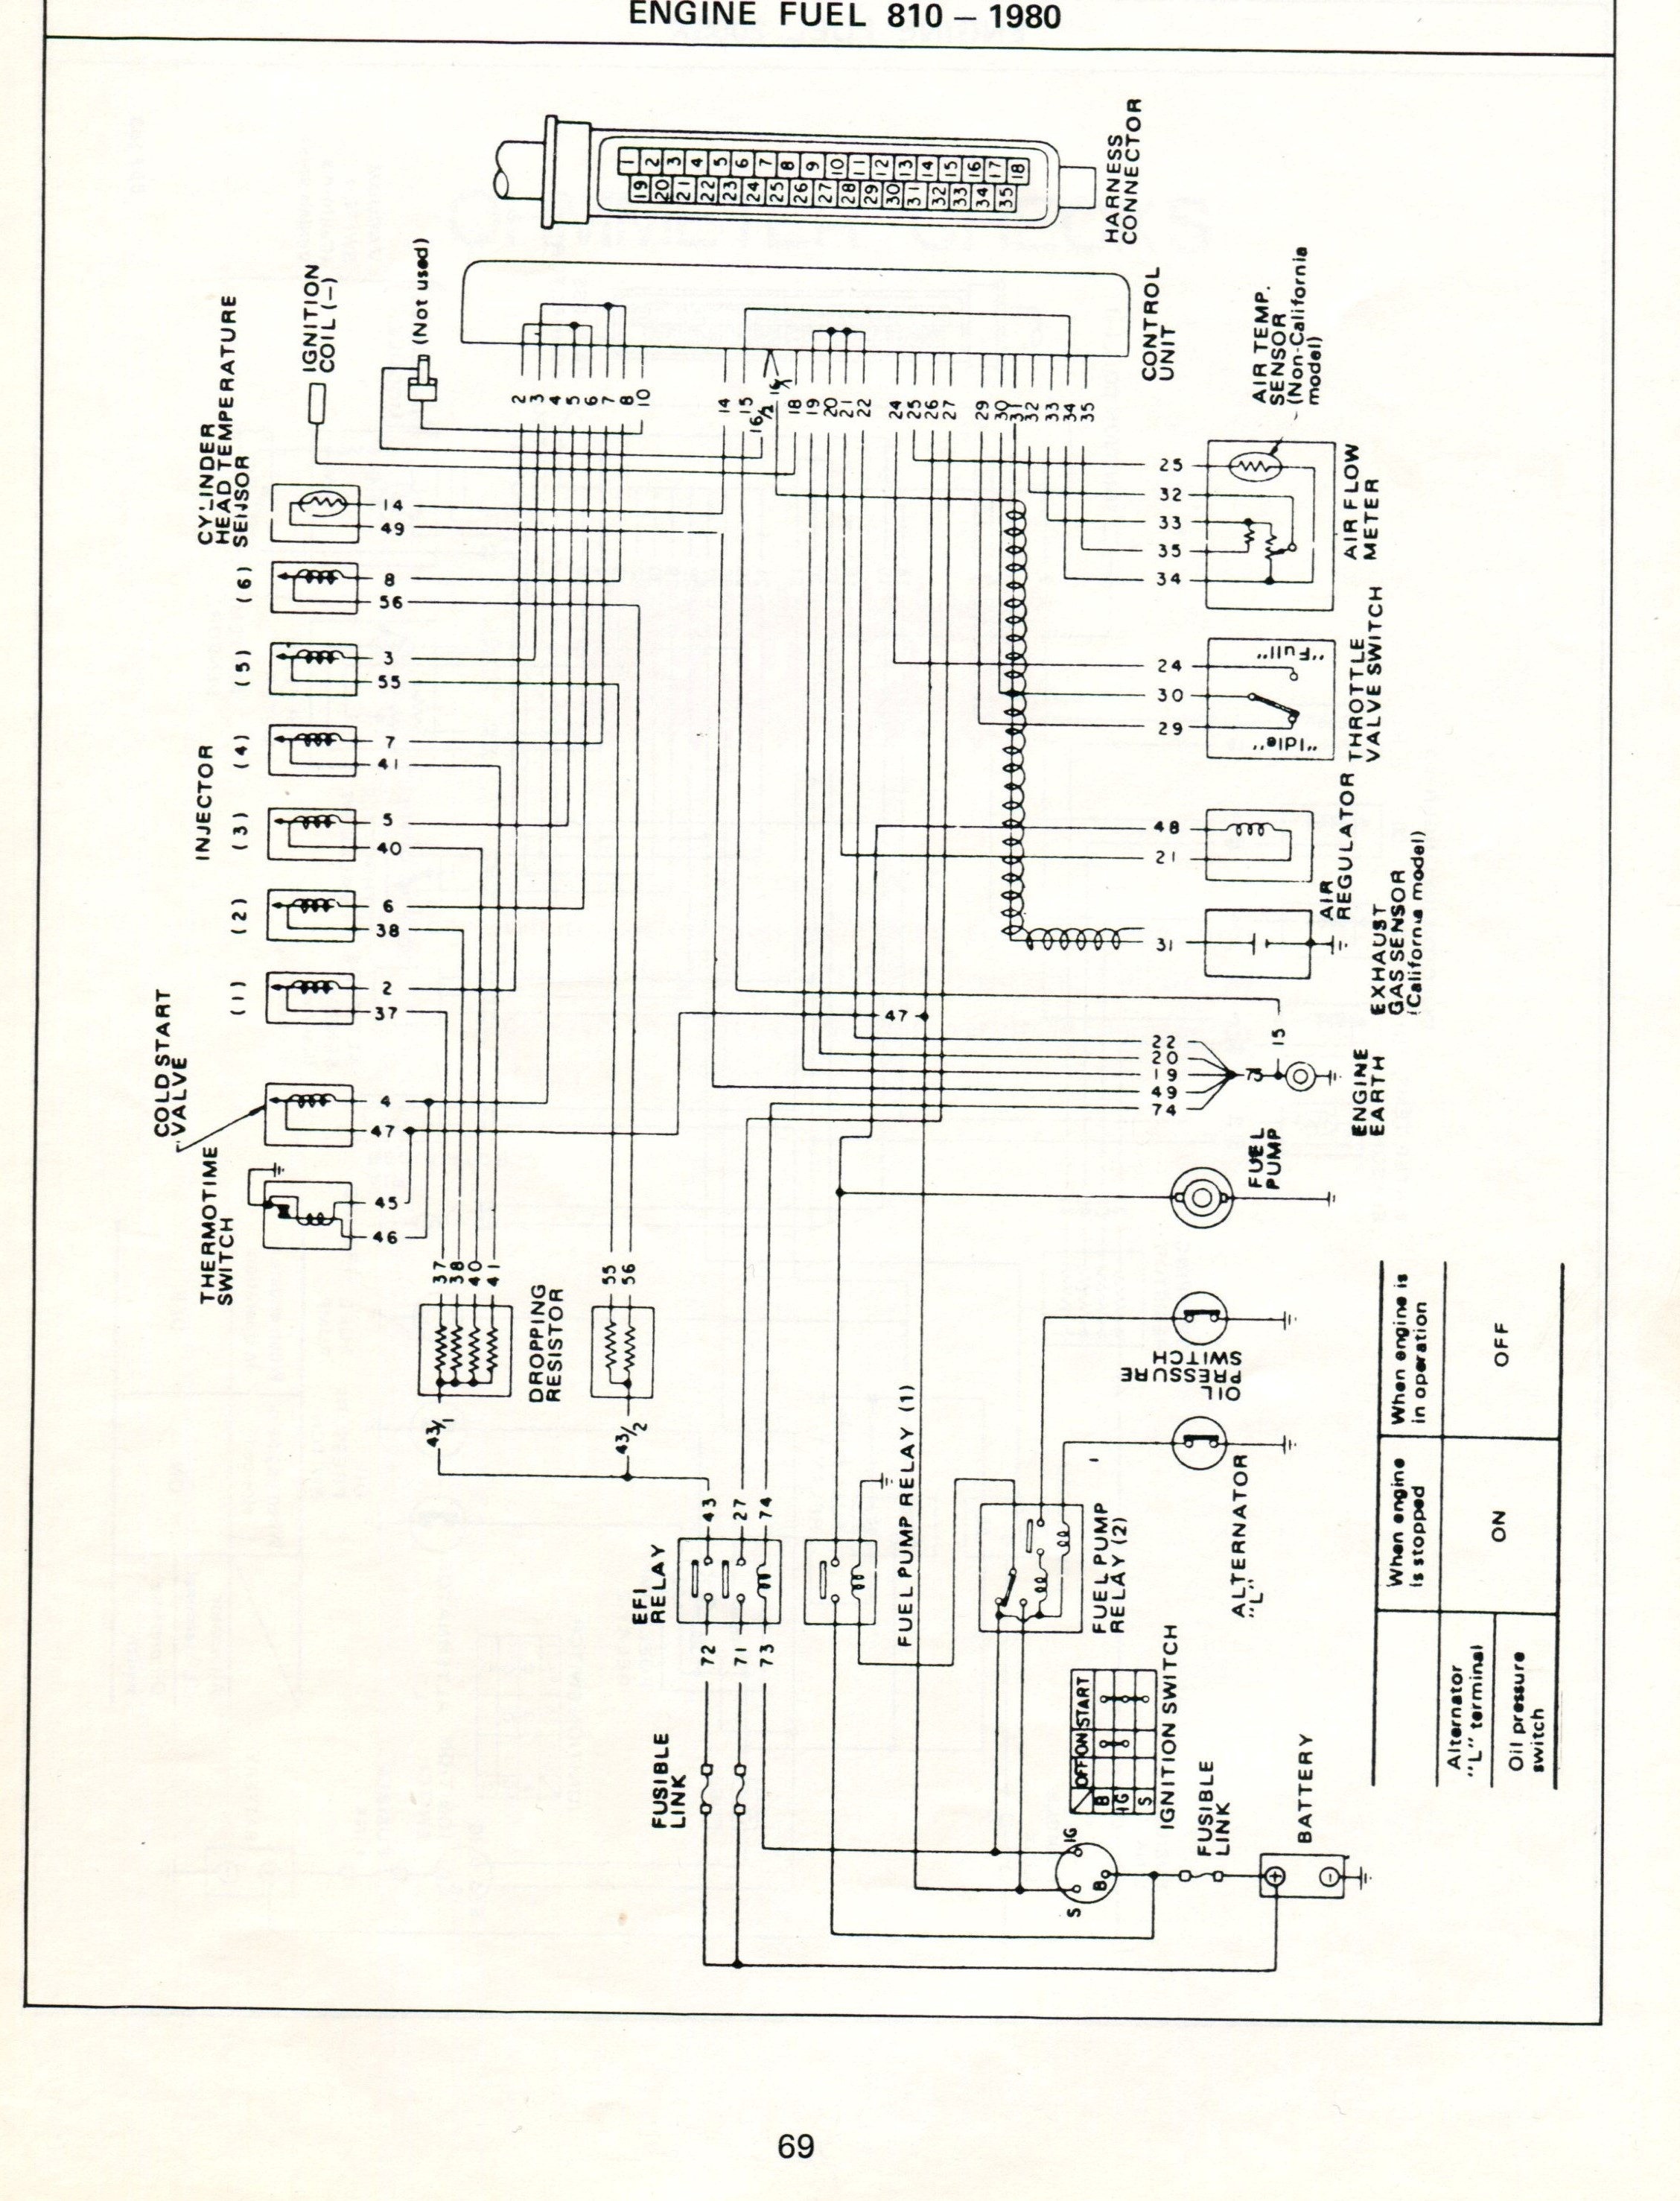 1971 datsun 510 wiring diagram 2007 kia spectra stereo get free image about